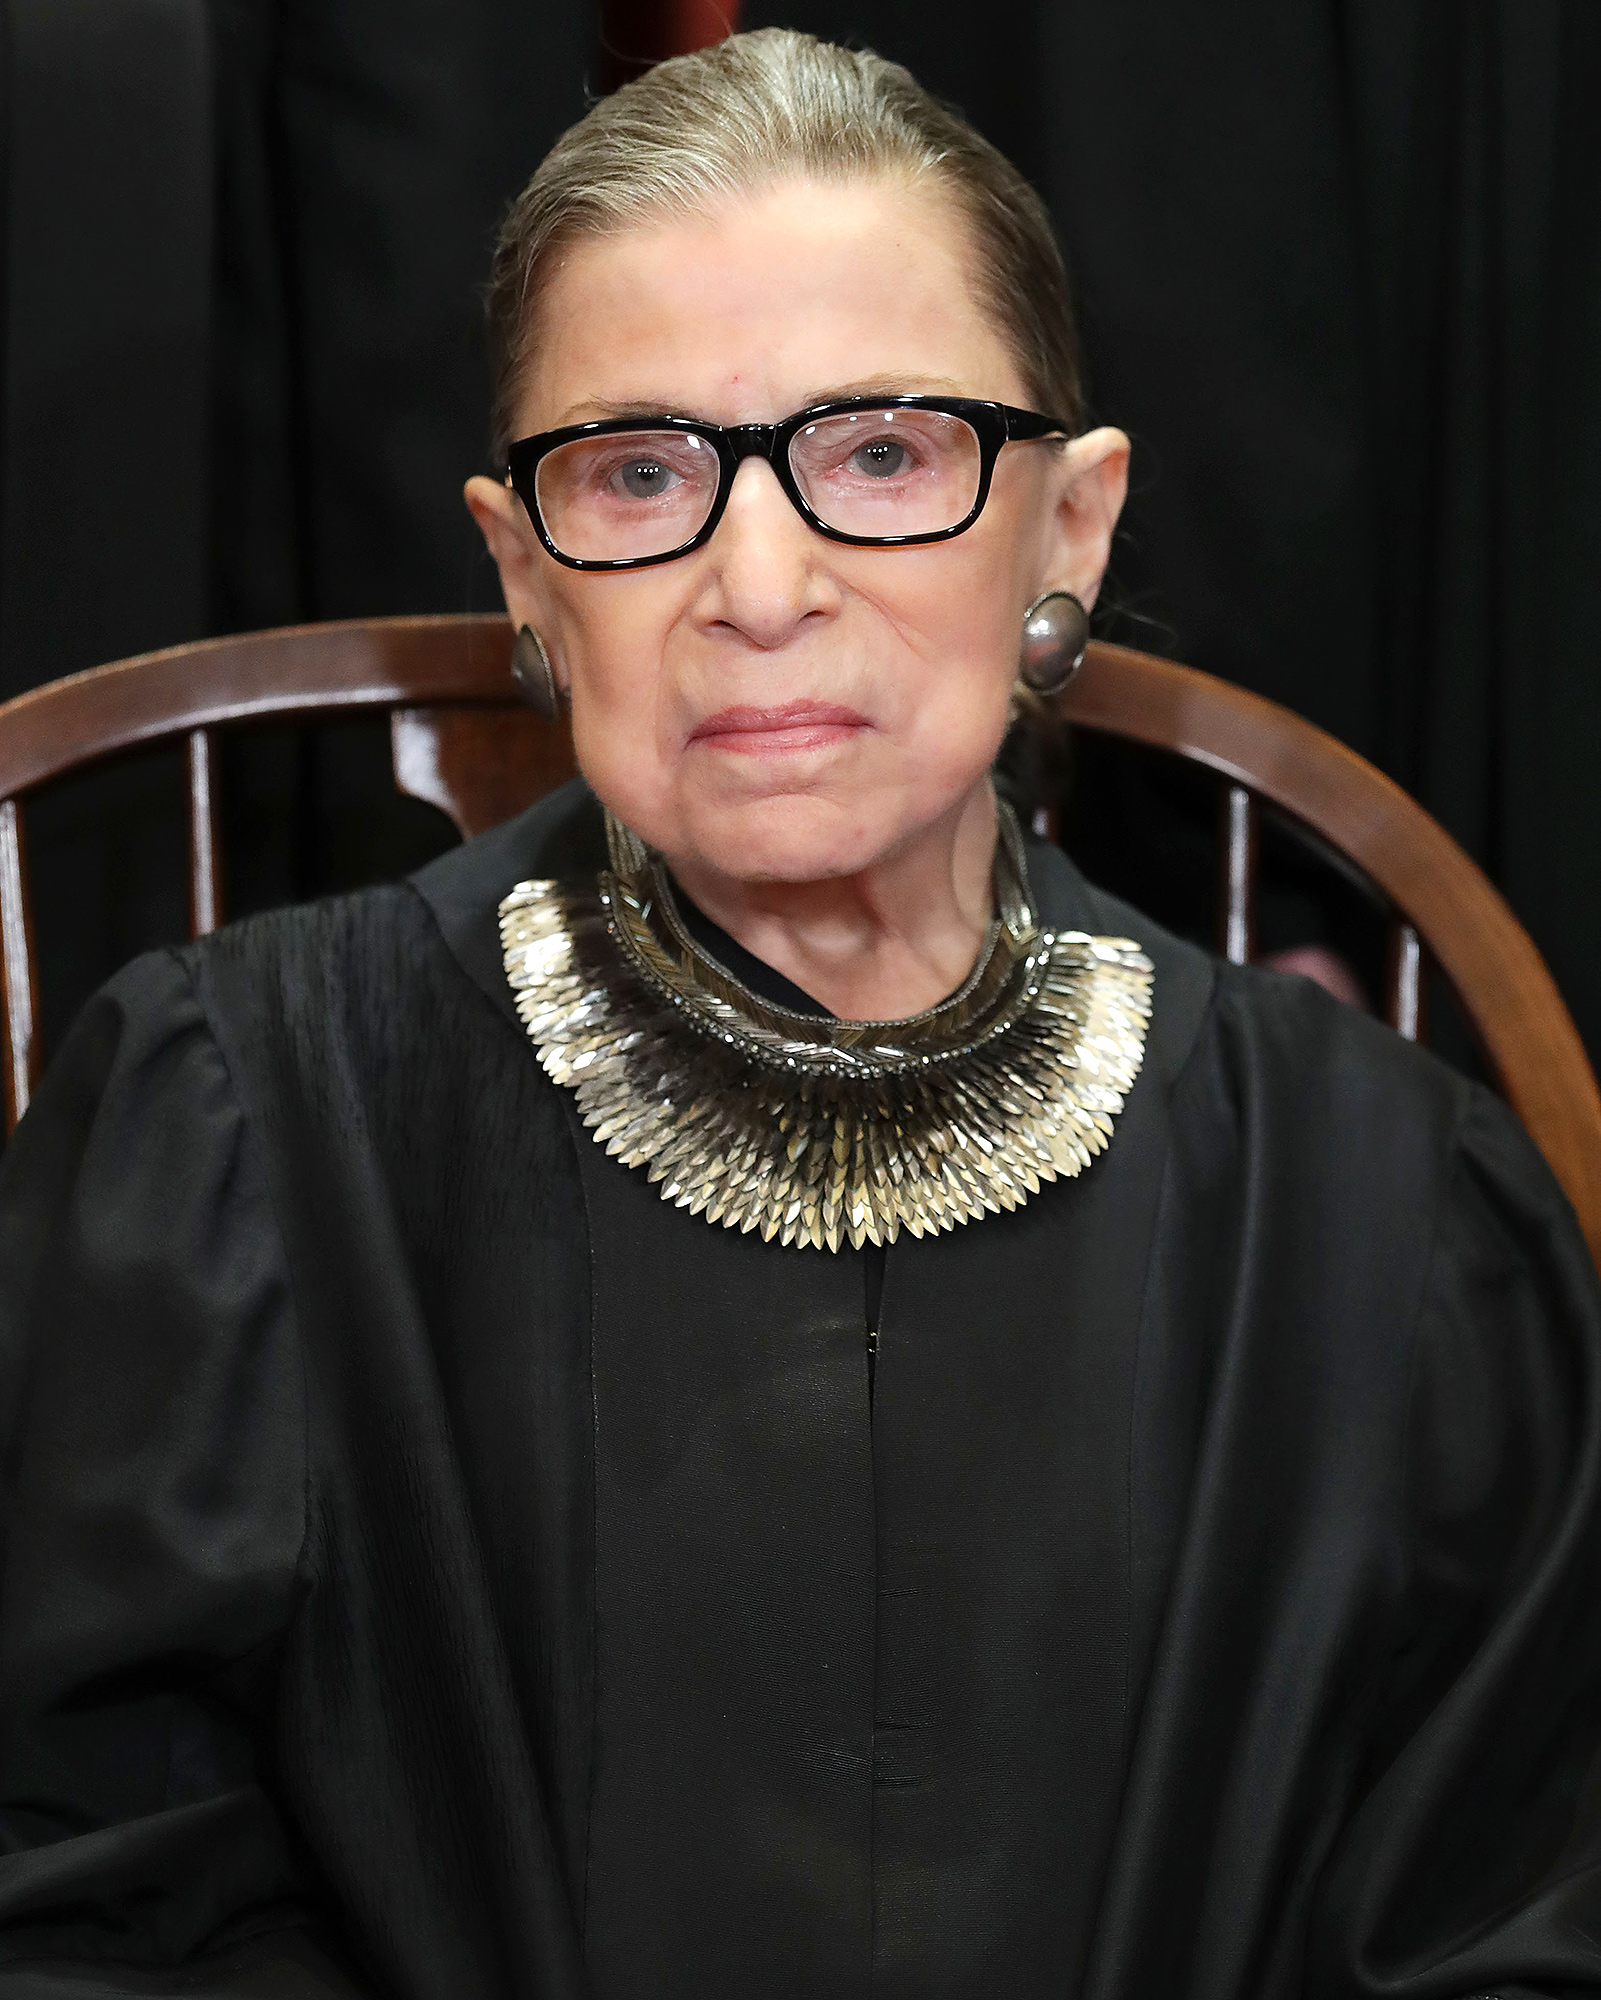 Mitch McConnell Said 'No' to Ruth Bader Ginsburg Lying in State at the Capitol, New Book Claims